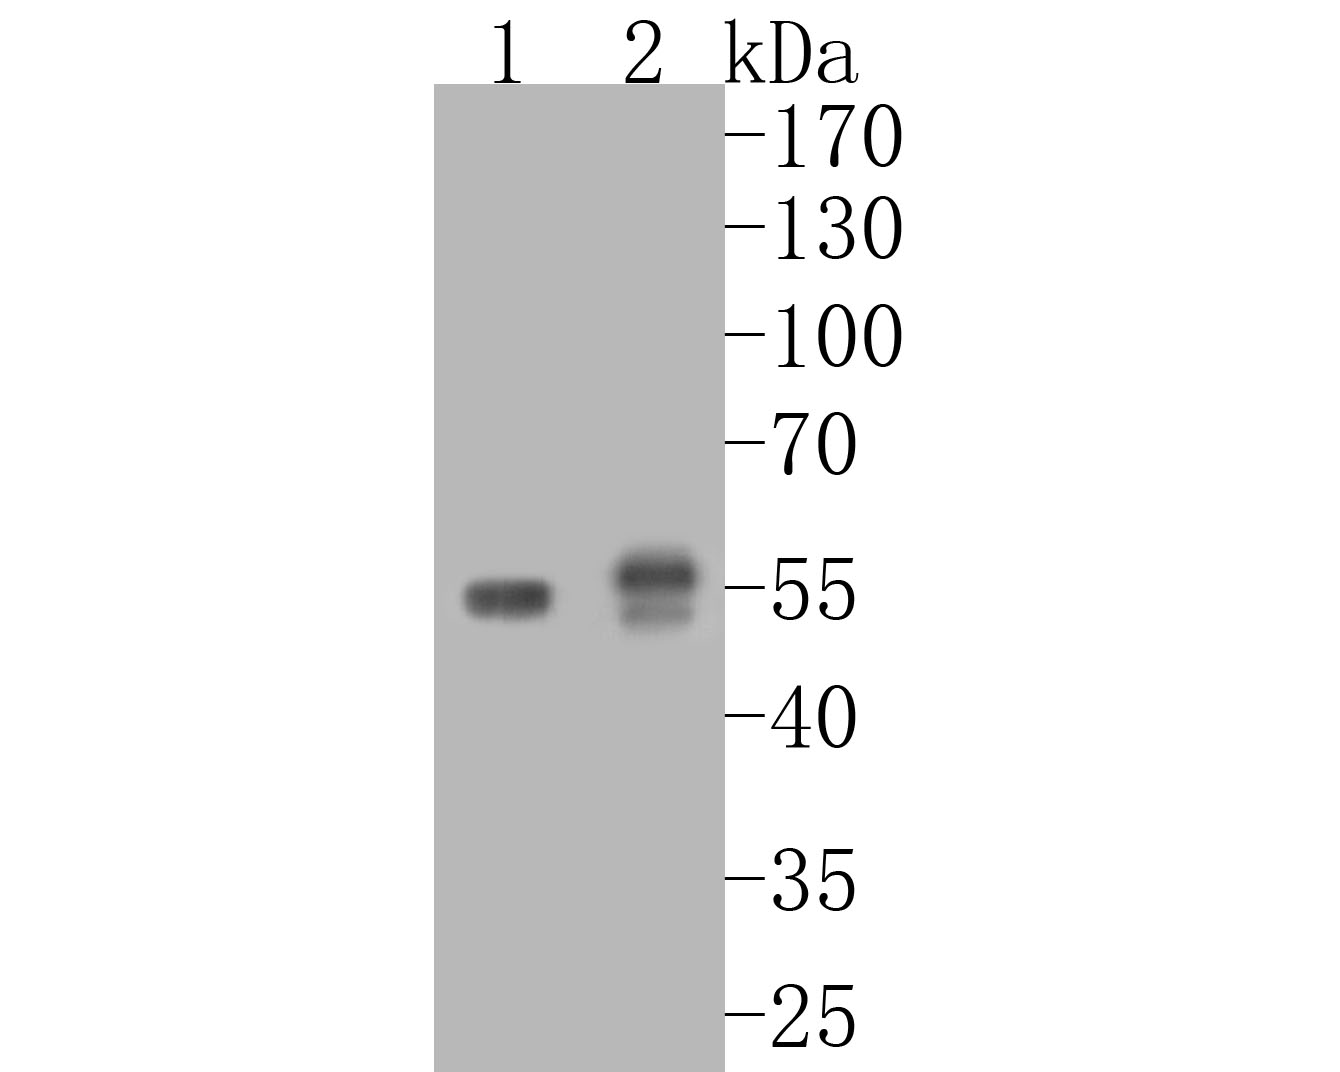 Western blot analysis of PPAR gamma on different lysates. Proteins were transferred to a PVDF membrane and blocked with 5% BSA in PBS for 1 hour at room temperature. The primary antibody (ET1702-57, 1/500) was used in 5% BSA at room temperature for 2 hours. Goat Anti-Rabbit IgG - HRP Secondary Antibody (HA1001) at 1:5,000 dilution was used for 1 hour at room temperature.<br />  Positive control: <br />  Lane 1: PC-12 cell lysate<br />  Lane 2: K562 cell lysate